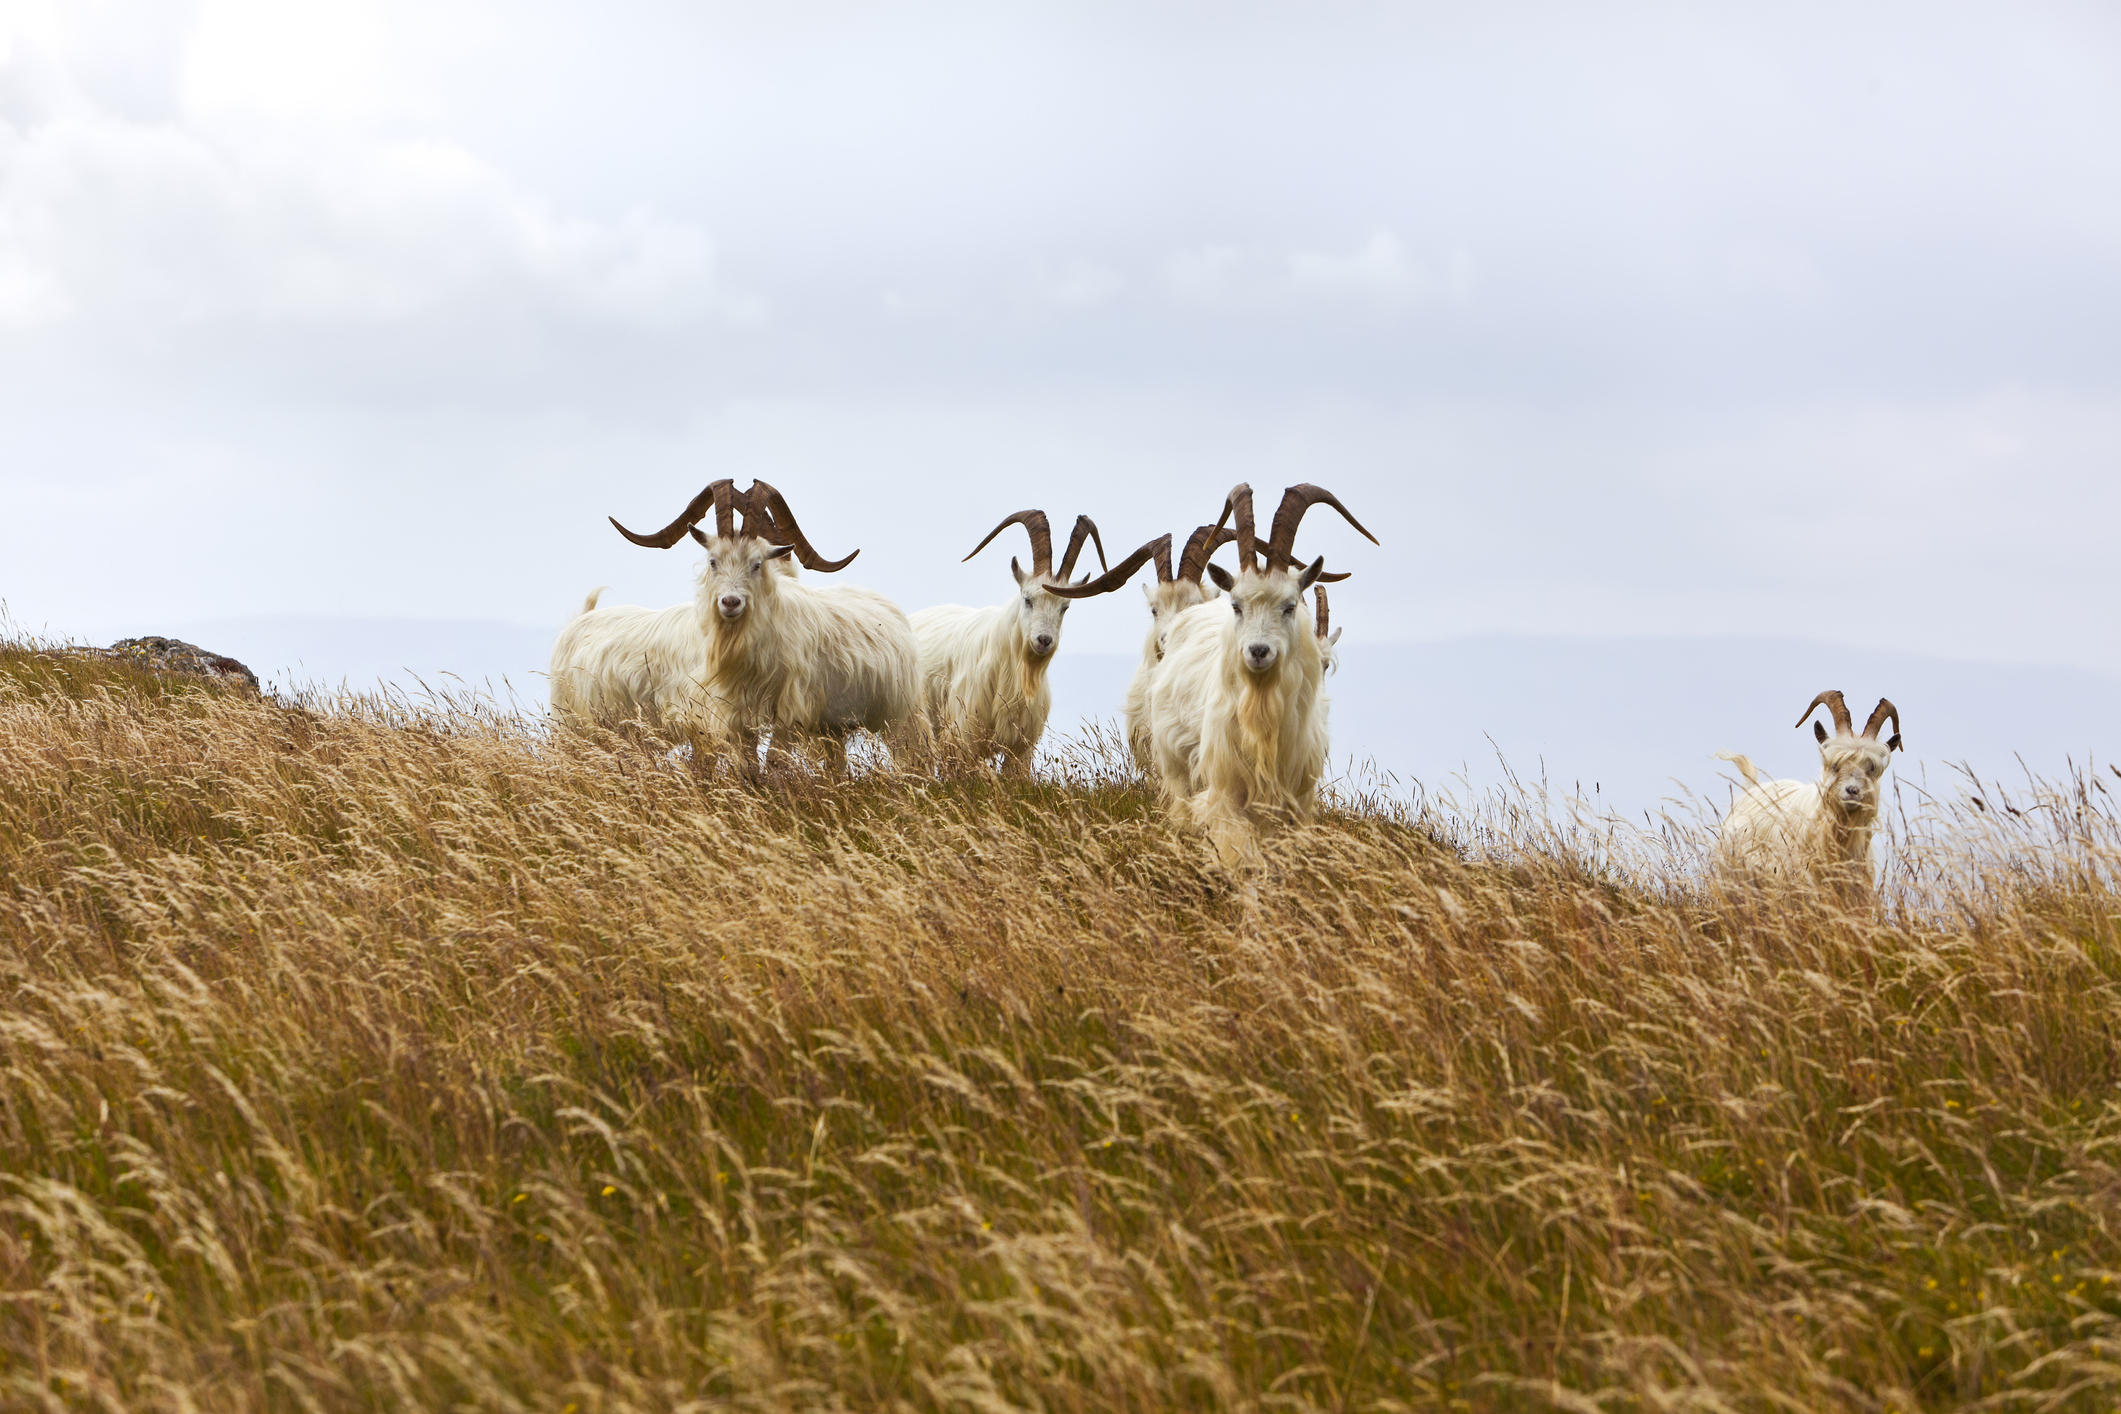 100% pure cashmere sourced from mongolian goats